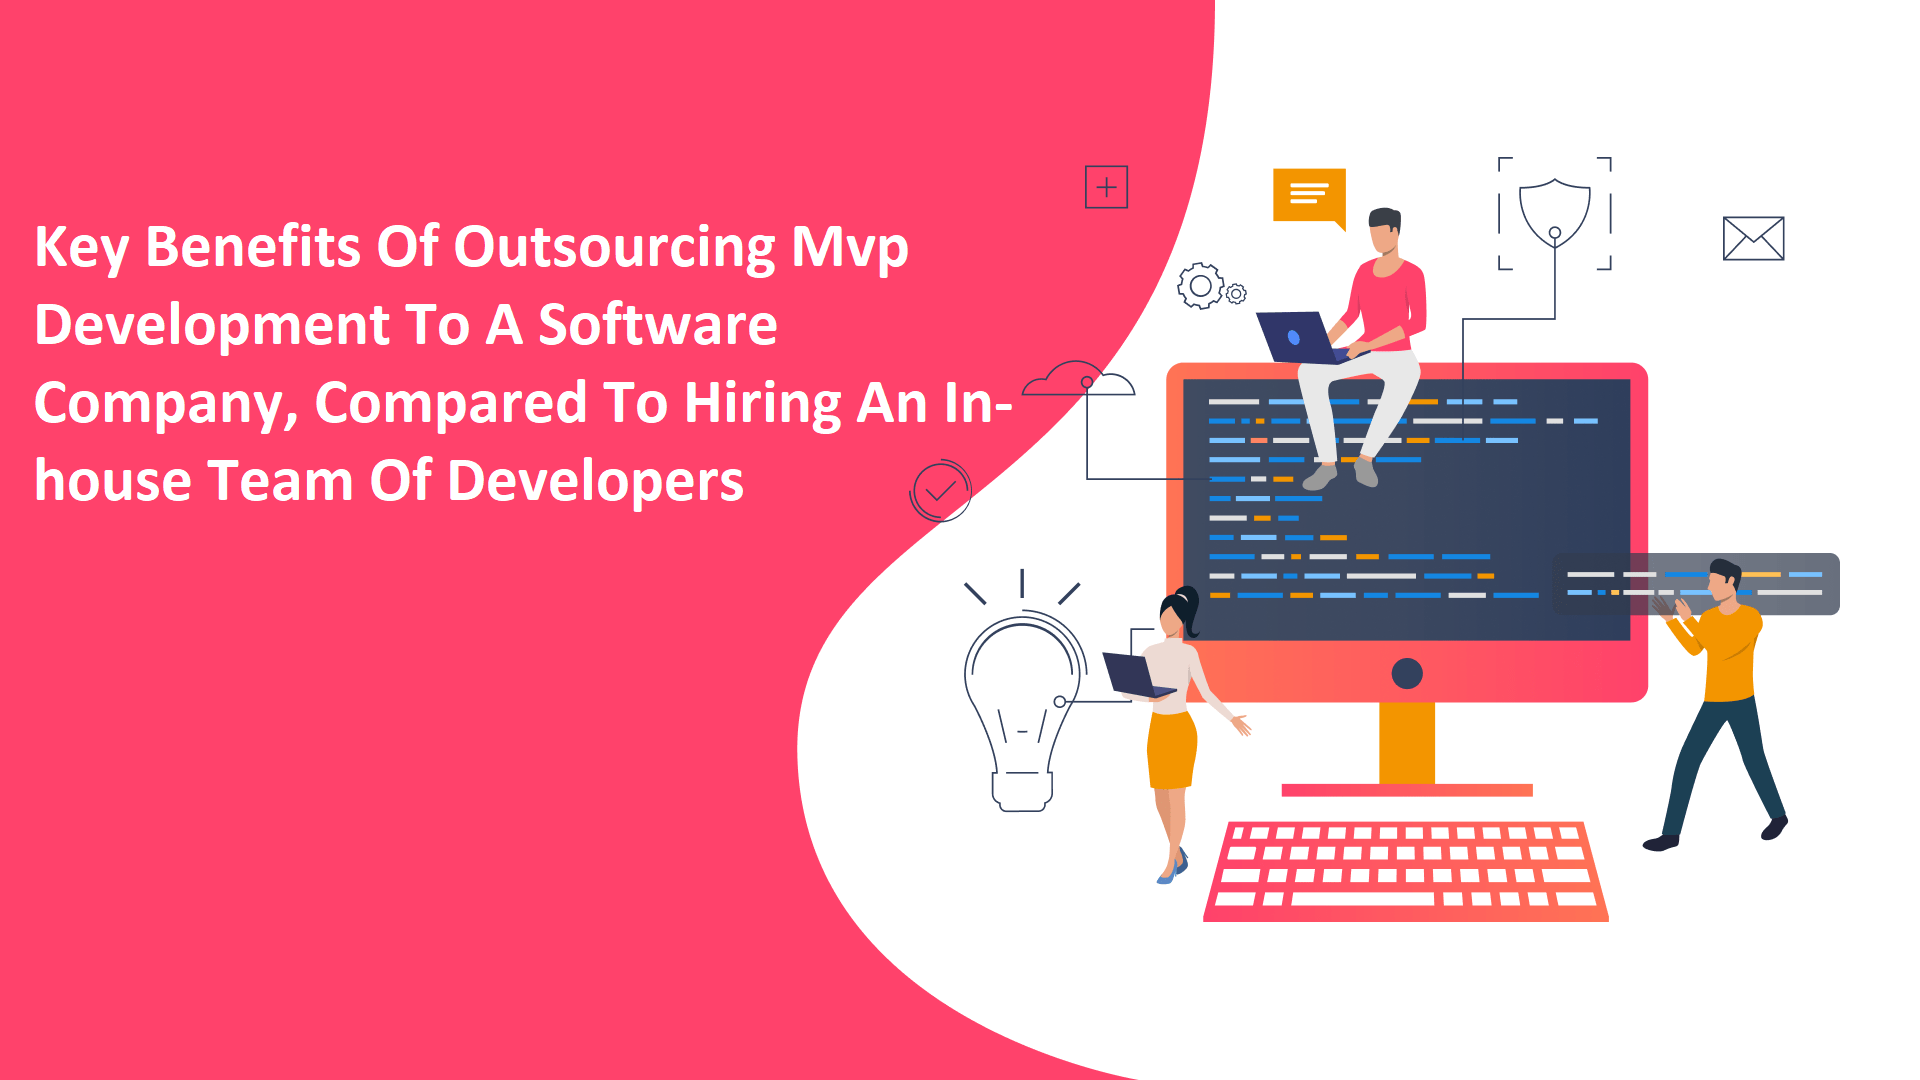 Key Benefits Of Outsourcing Mvp Development To A Software Company, Compared To Hiring An In-house Team Of Developers